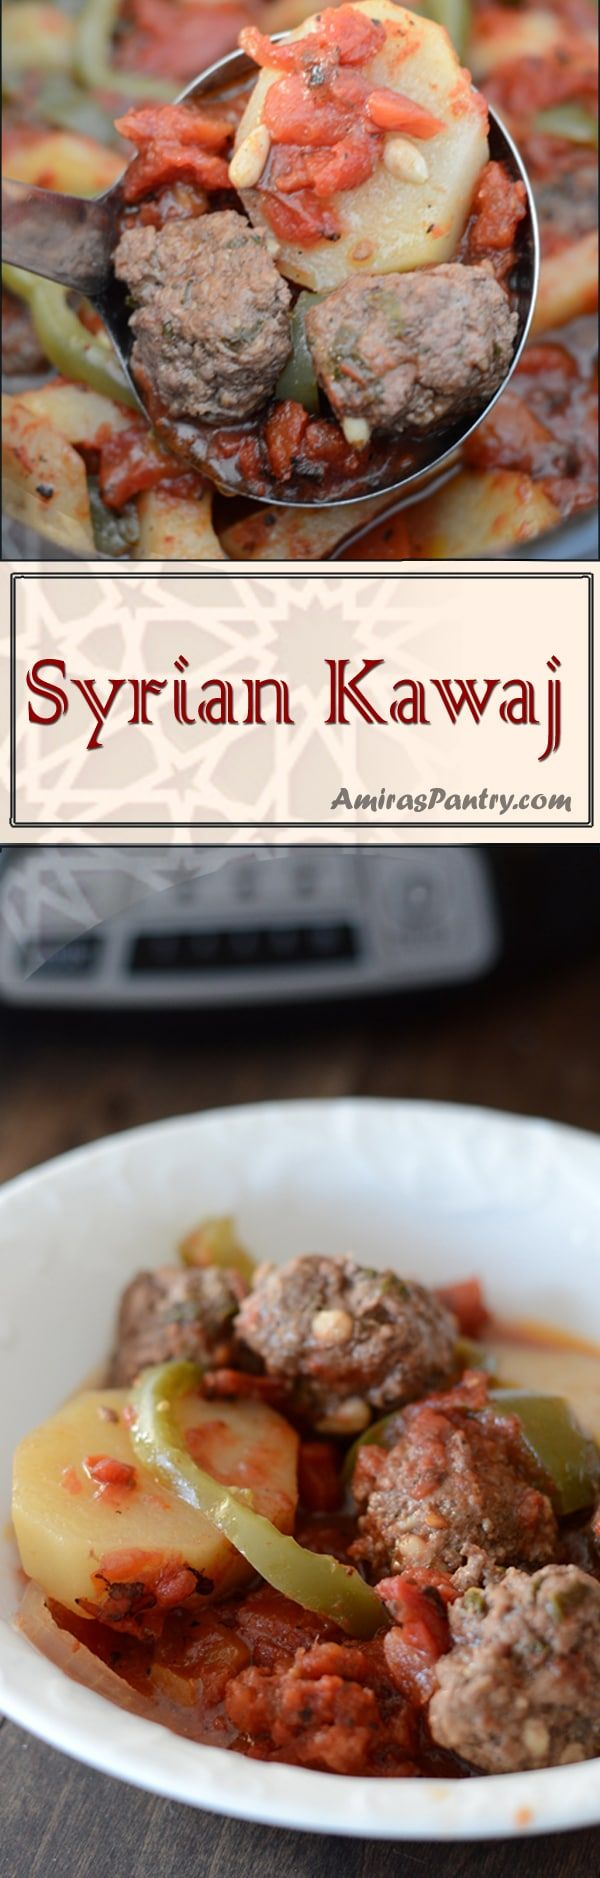 Syrian Kufta (Kawaj) is a a potato, tomato & minced meat bake, an easy weeknight dinner but this time it gets even easier with the slow cooker. #slowcooker #easydinner